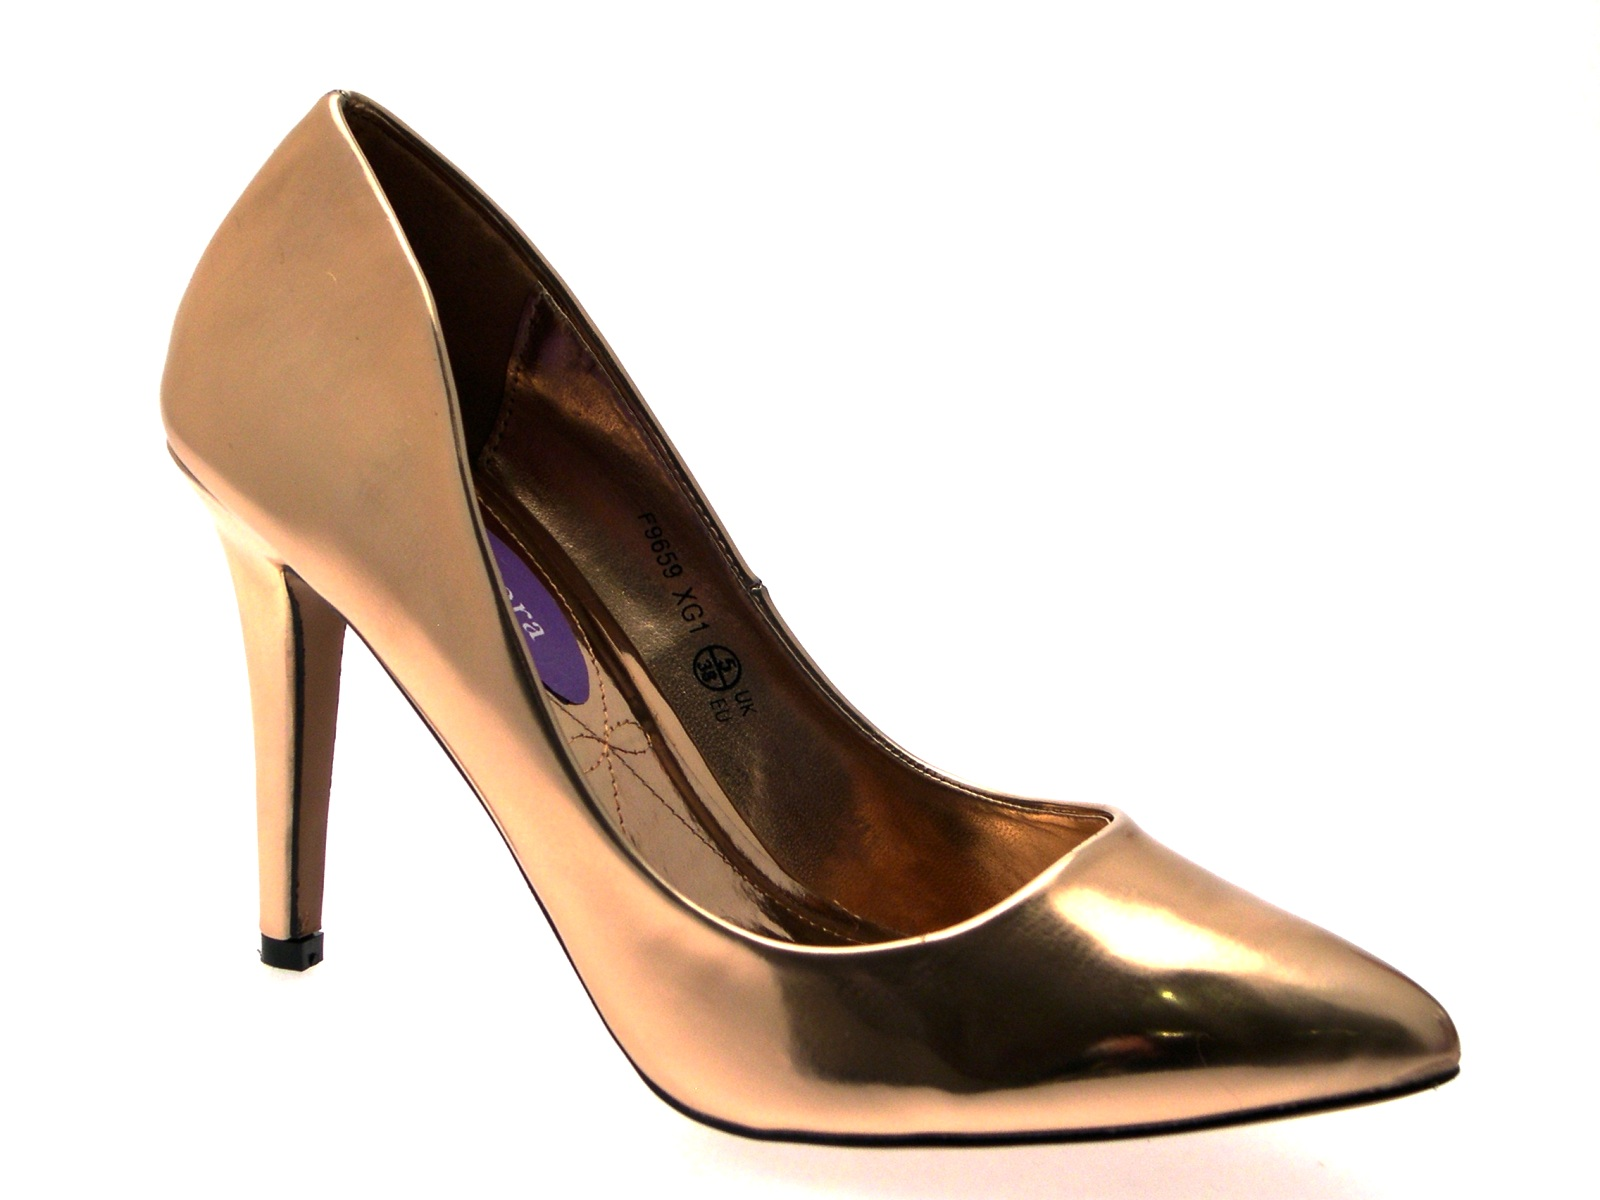 Womens-Metallic-Pointed-Toe-Court-Stiletto-High-Heels-Ladies-Work-Office-Shoes thumbnail 18